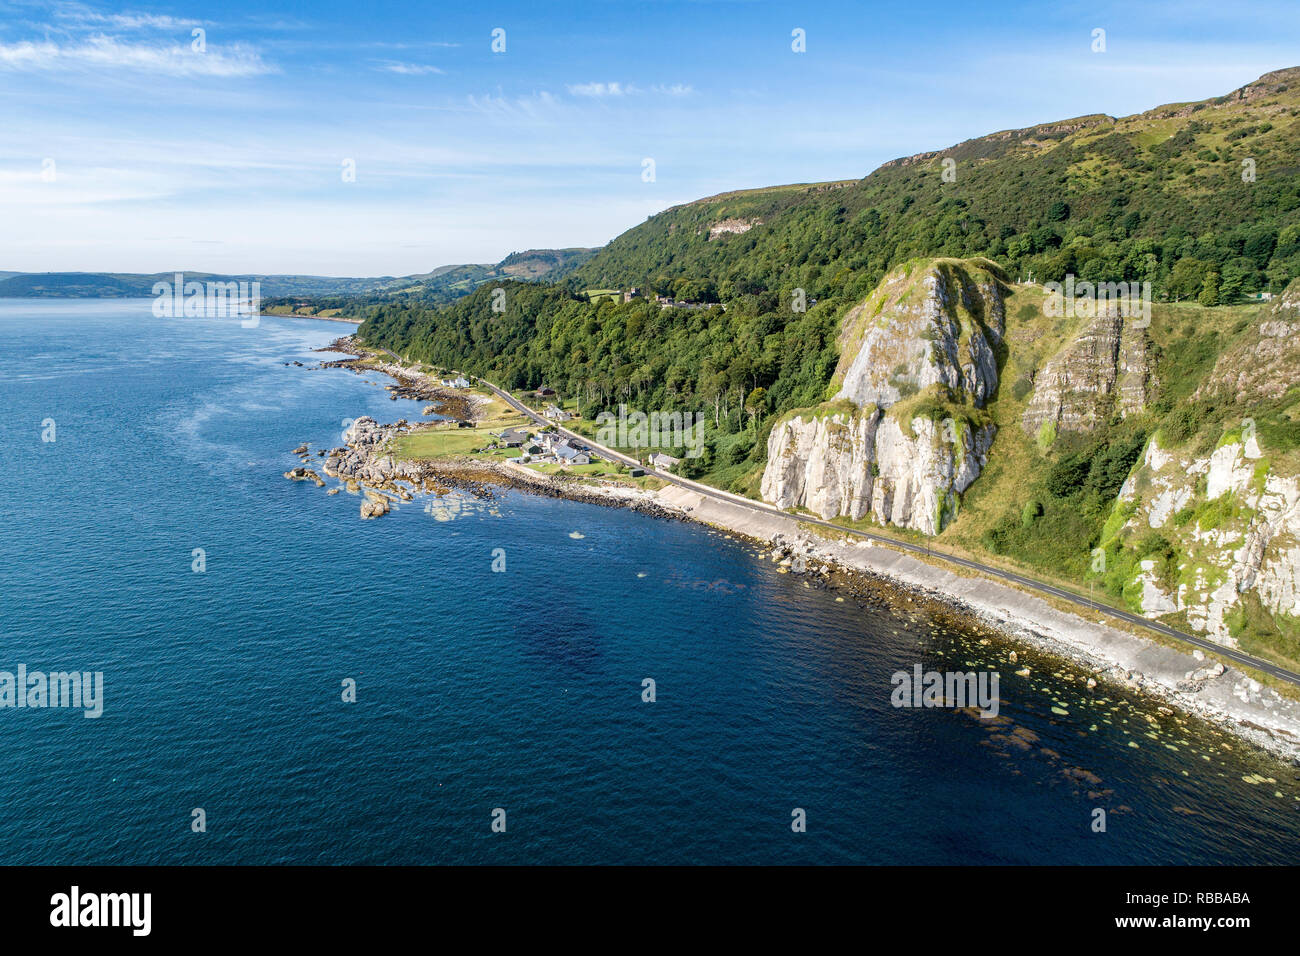 Garron Point in Northern Ireland, UK. A geological formation, parking and marina at Antrim Coast Road, a.k.a. Giants Causeway Coastal Route - Stock Image